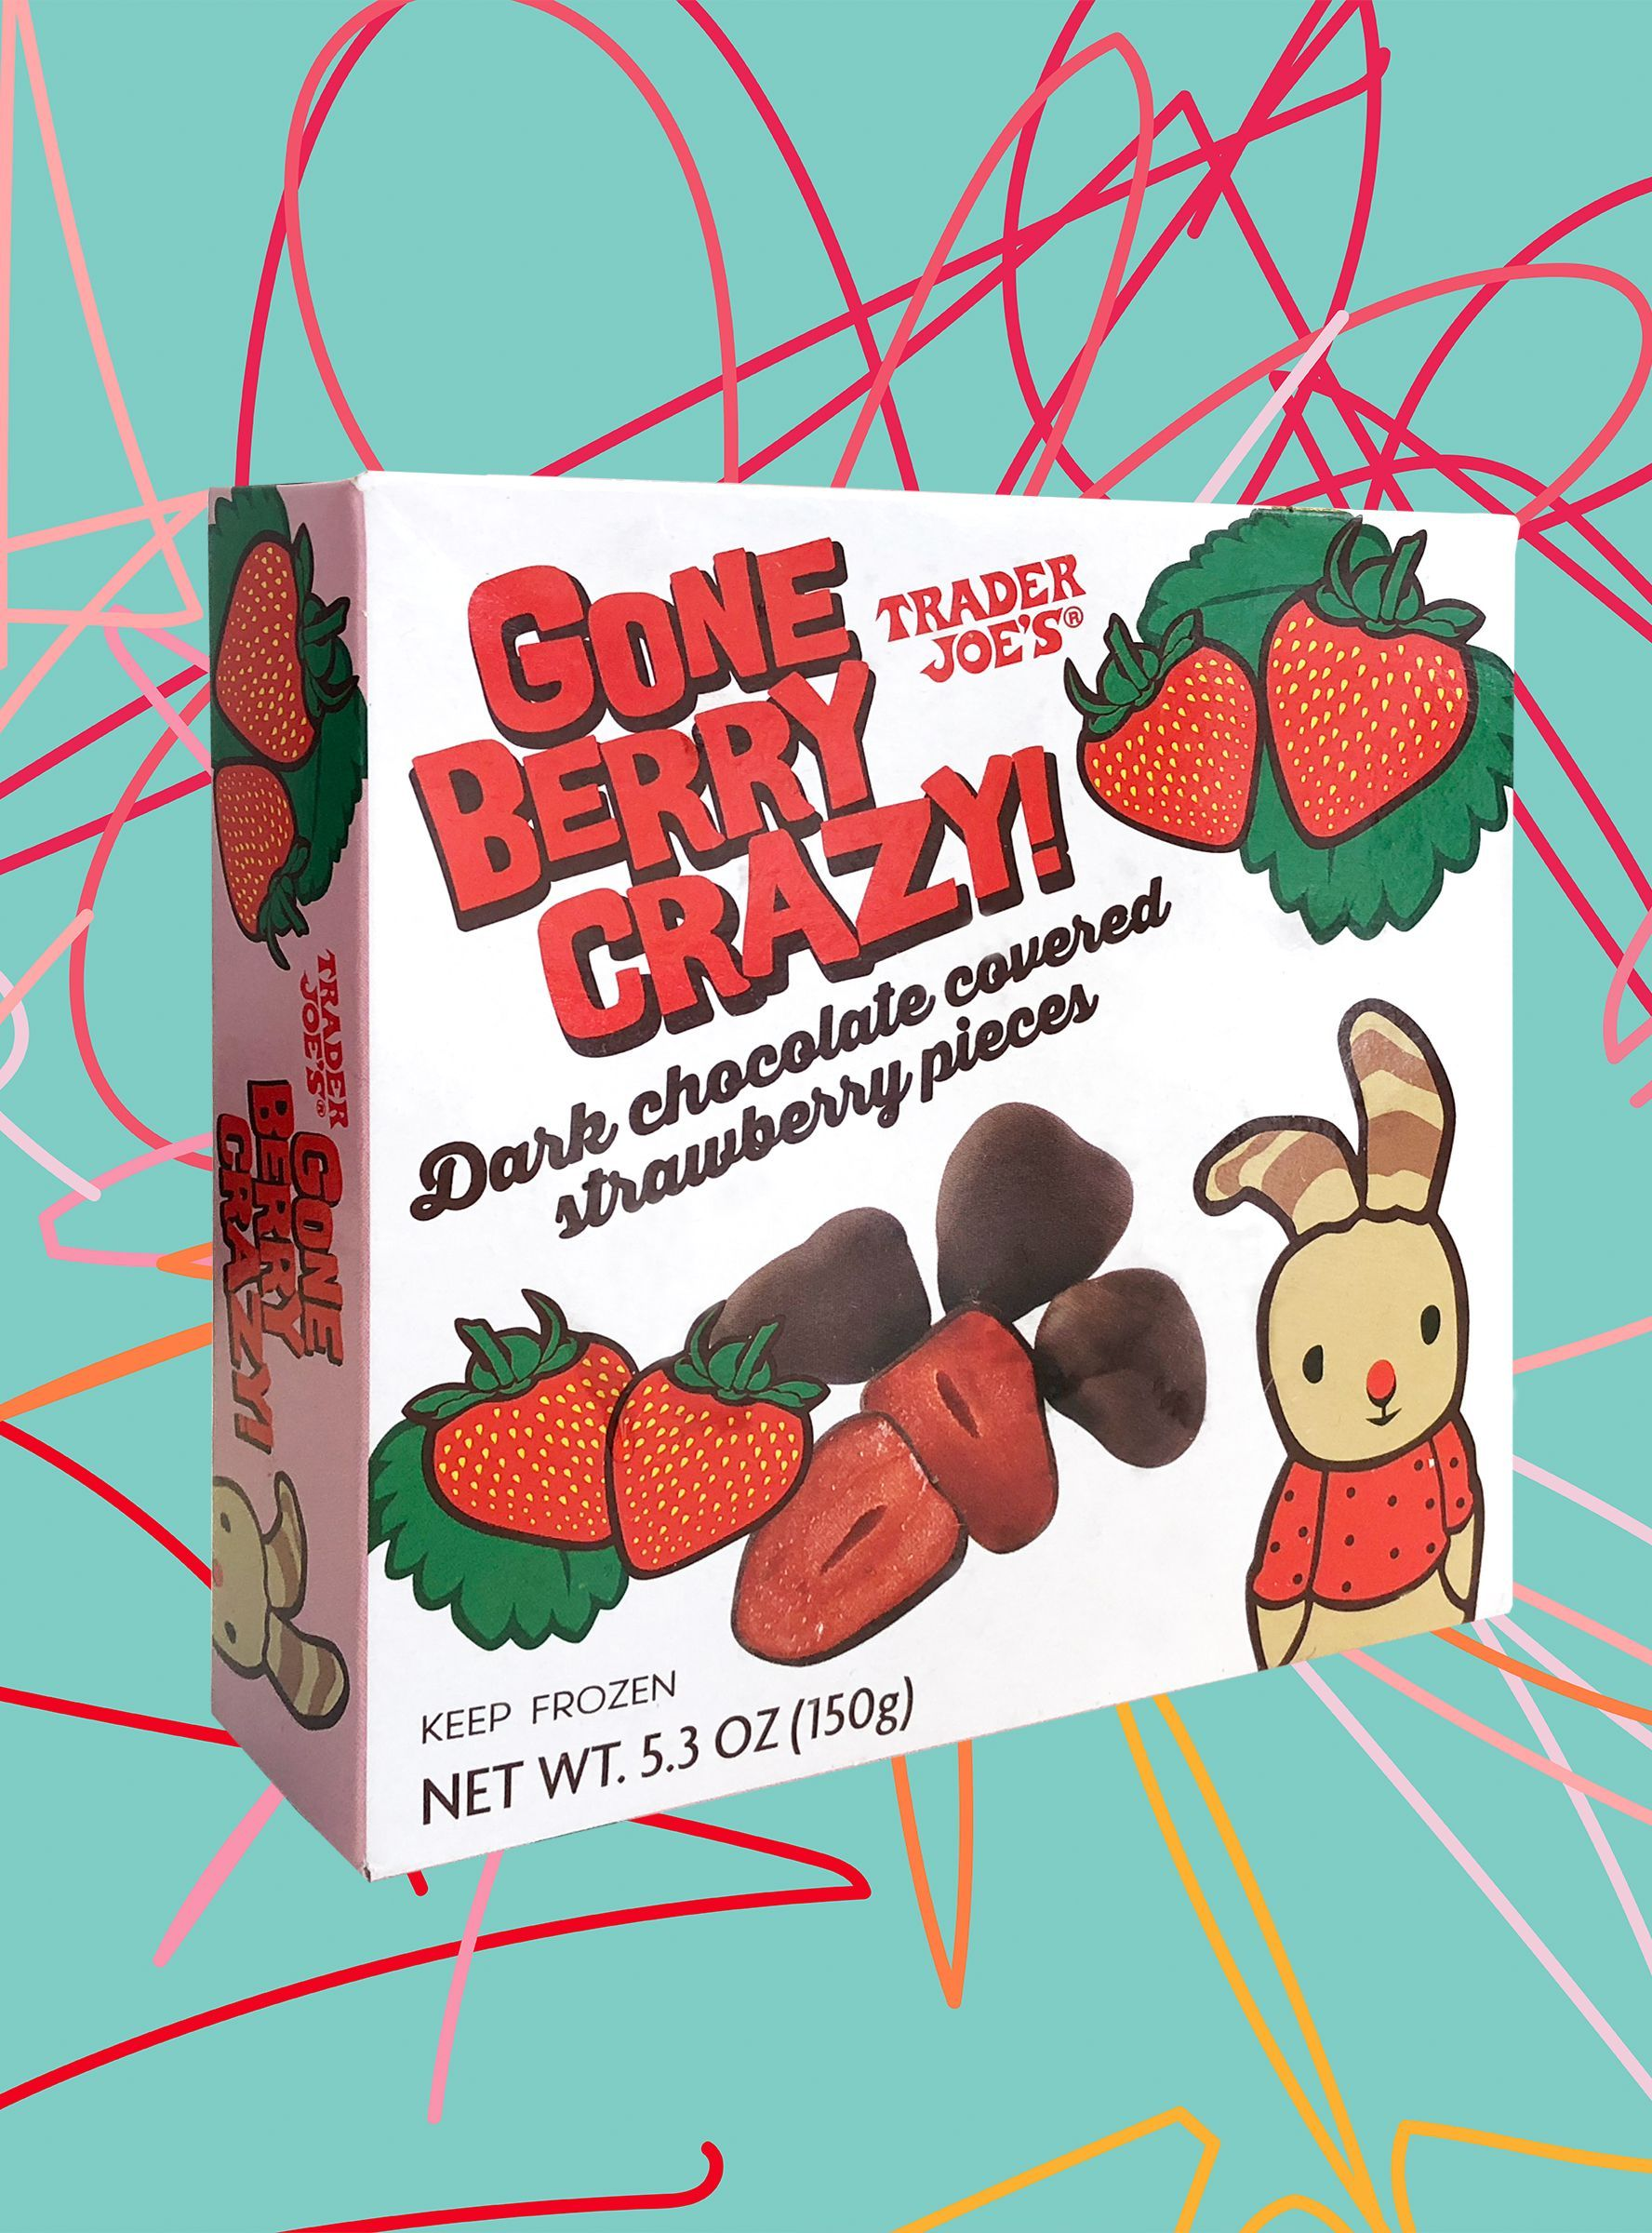 We Tried Trader Joe S New Summer Items Here Are The Highlights Https R29 Co 2lkez2q Trader Joes Trader Joe S Best Trader Joes Products